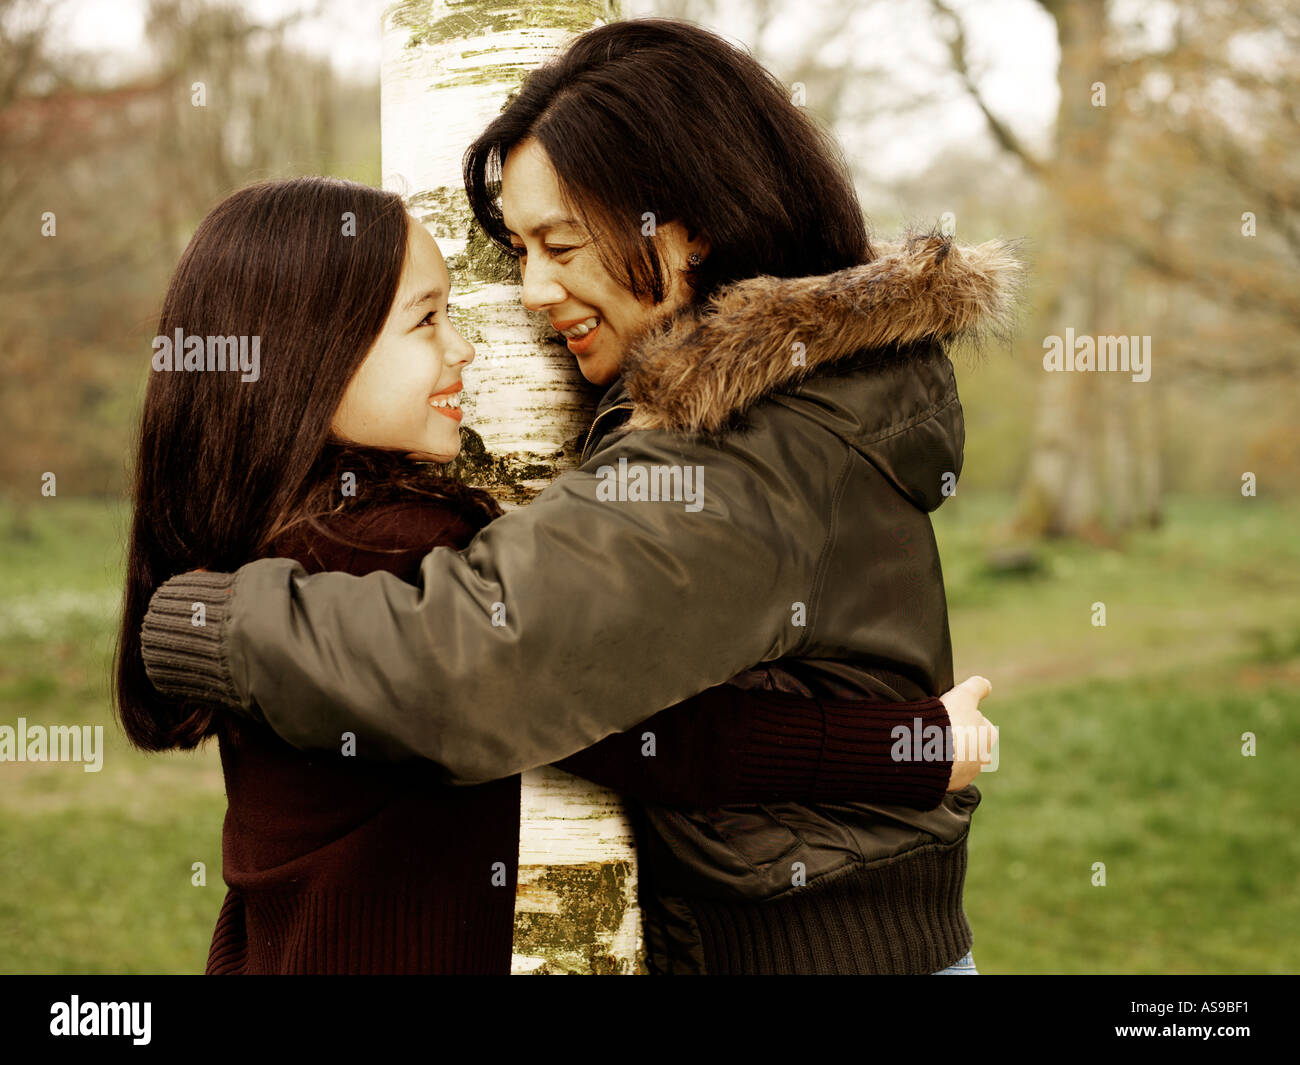 mother and daughter hugging around tree - Stock Image